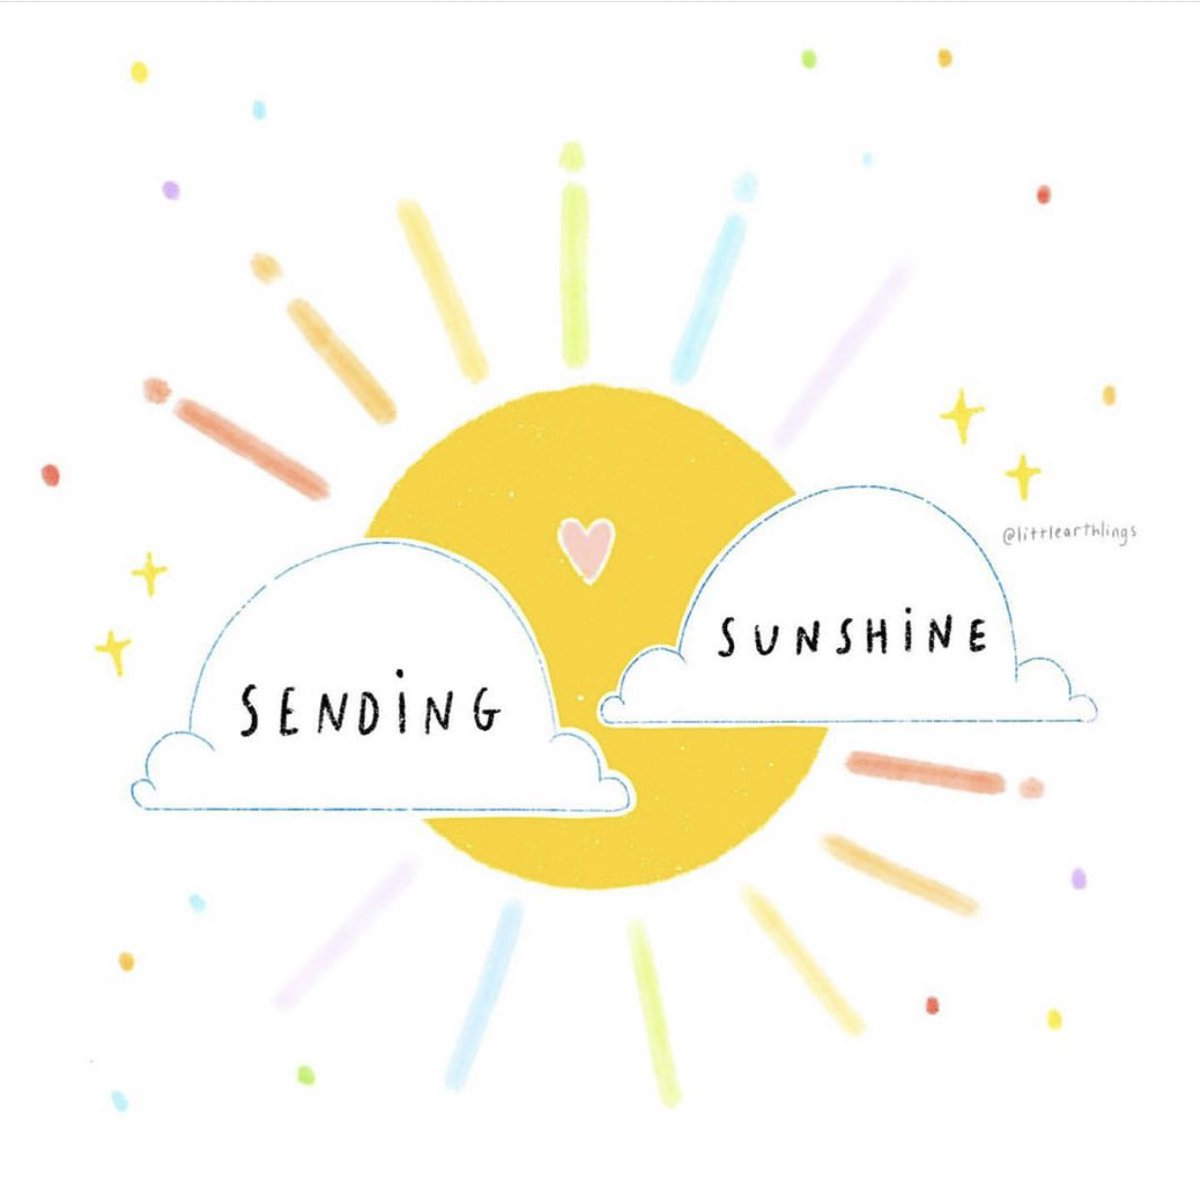 Richmond S Hope On Twitter Love This Artwork From Instagram Sending Positive Vibes This Monday Morning How Are You All Coping During Quarantine Remember You Can Contact Our Office For Advice Https T Co Nnnepvtj24 Monday